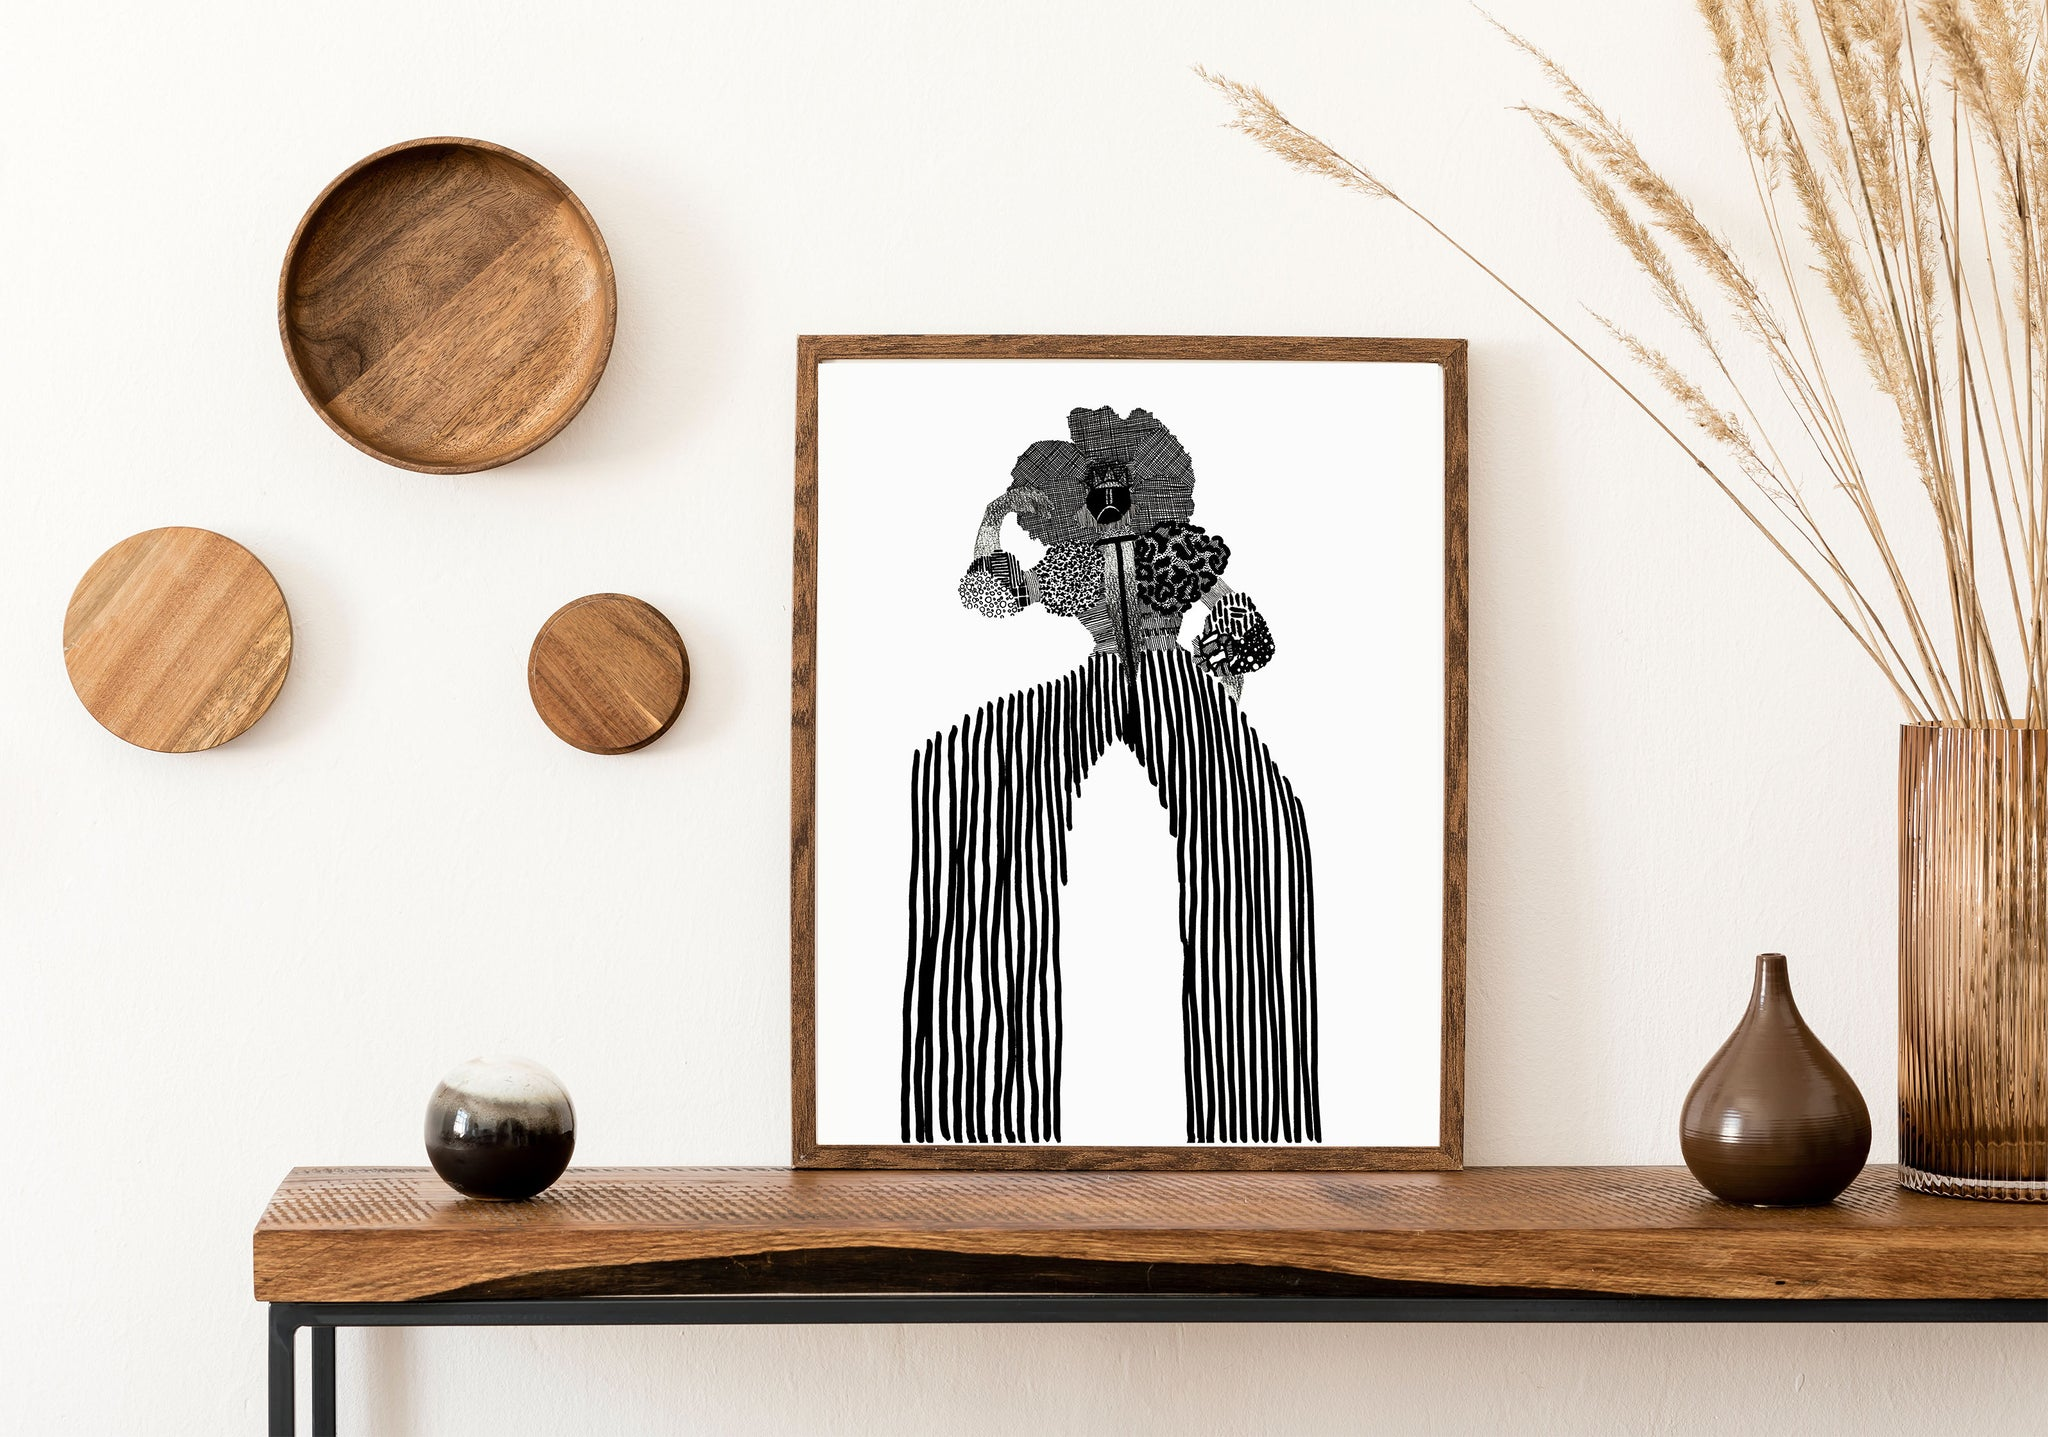 Framed We Were Here Ancestral Illustration by Black Artist DorcasCreates Sitting on an Oak table